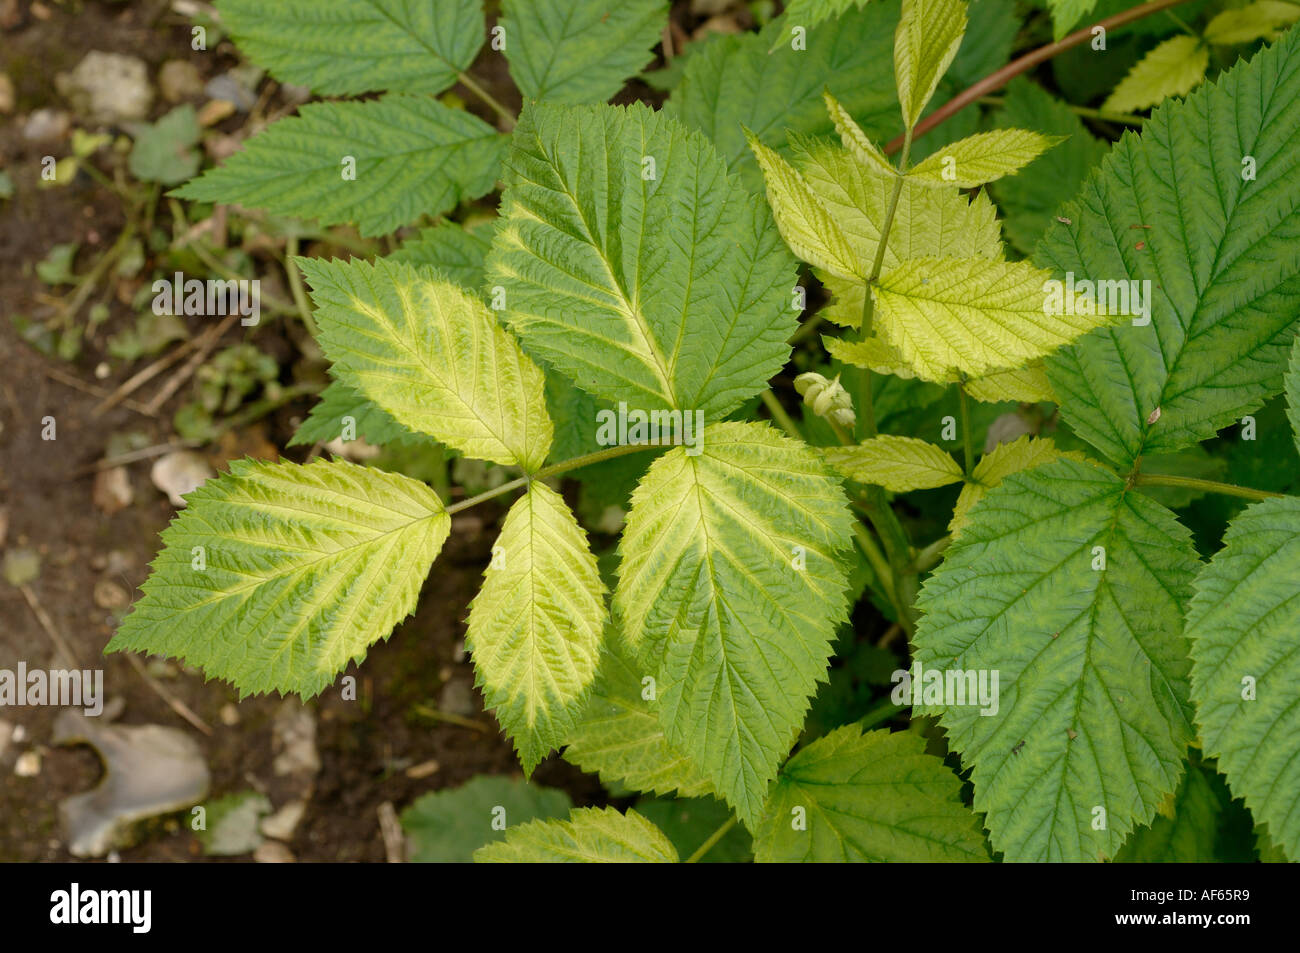 how to fix interveinal chlorosis weed